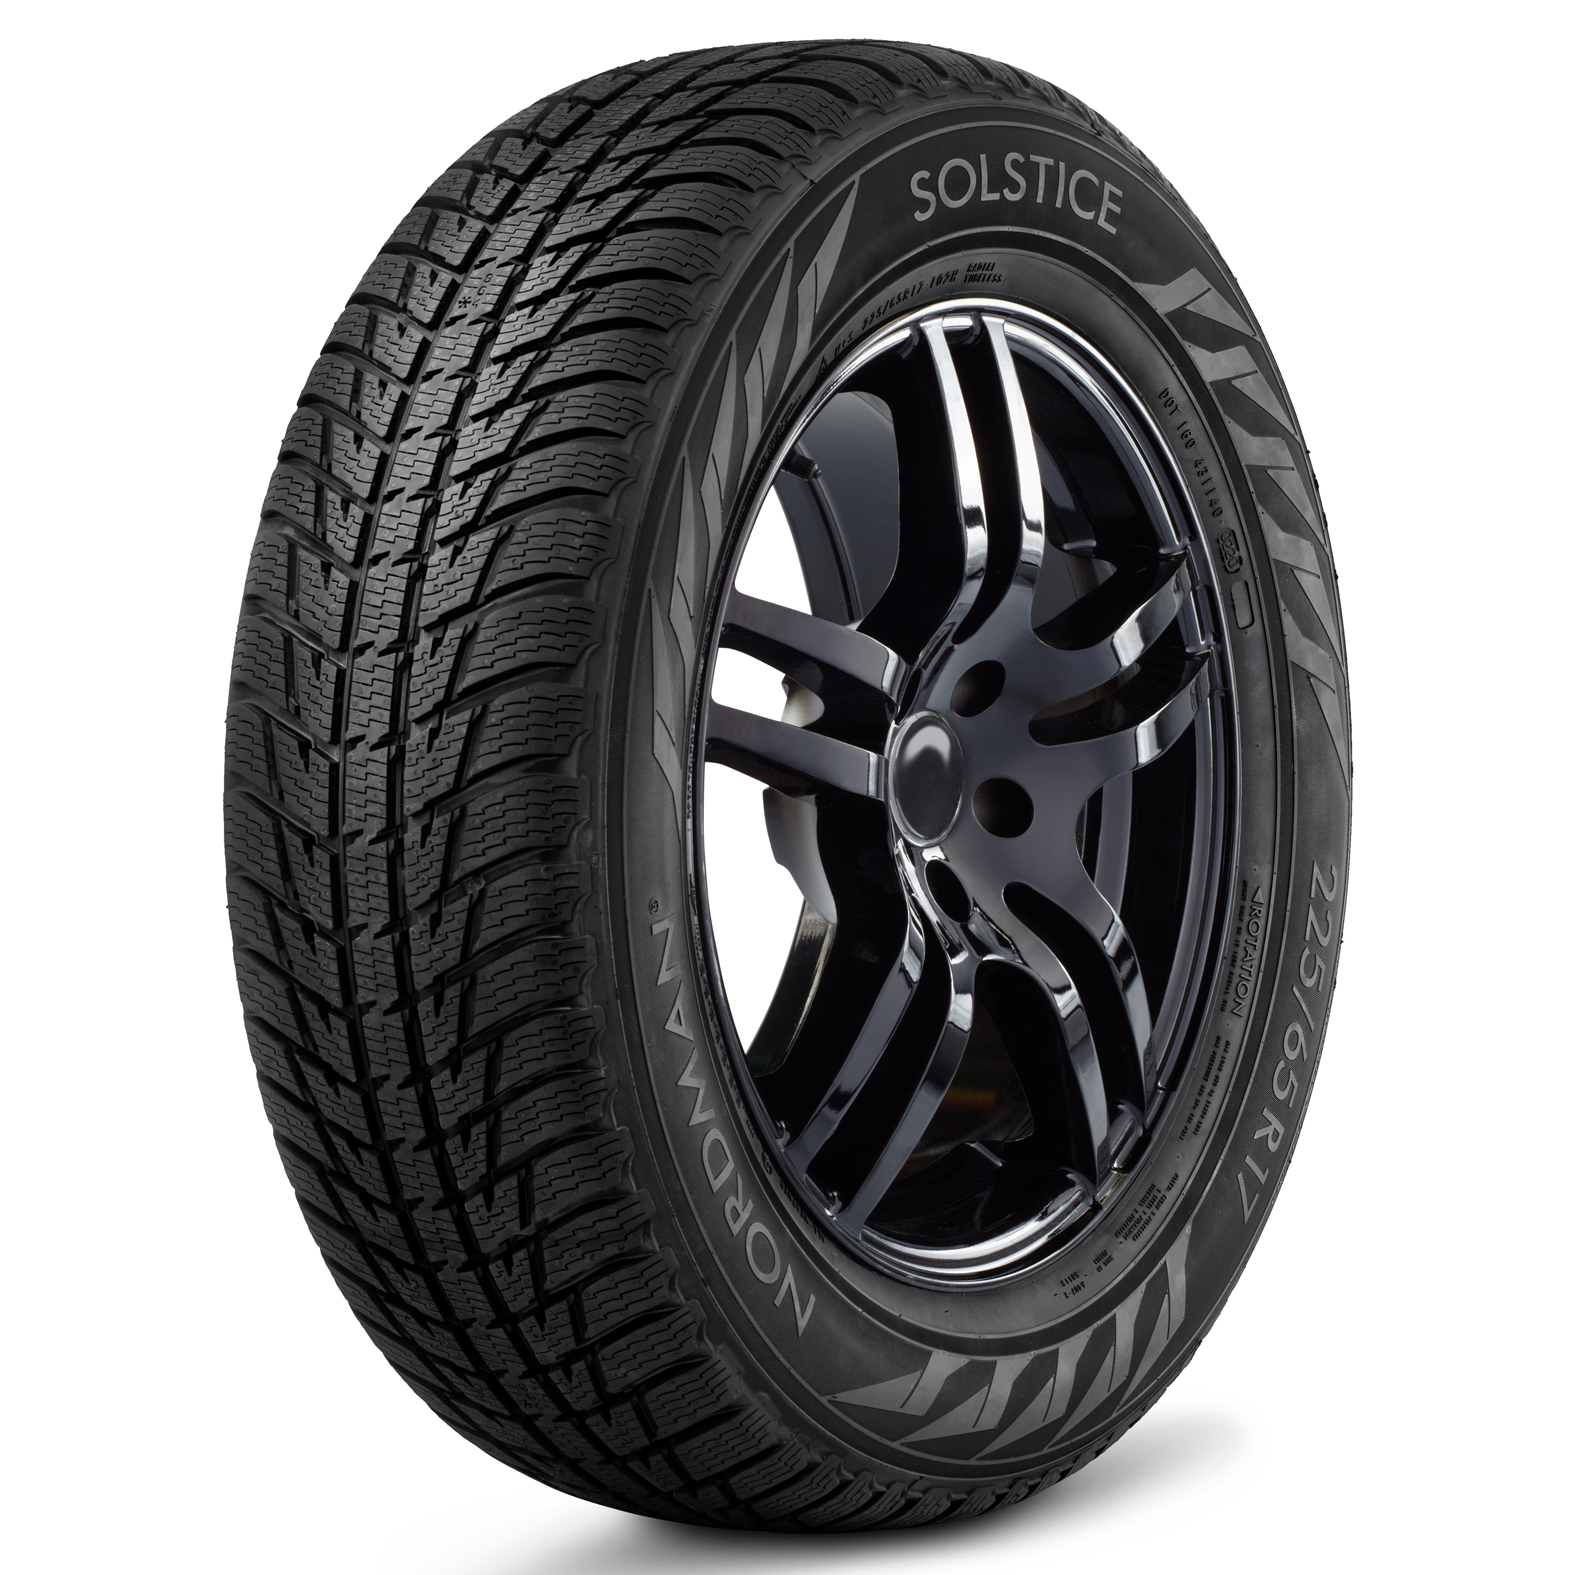 Nordman Solstice SUV tire – angle